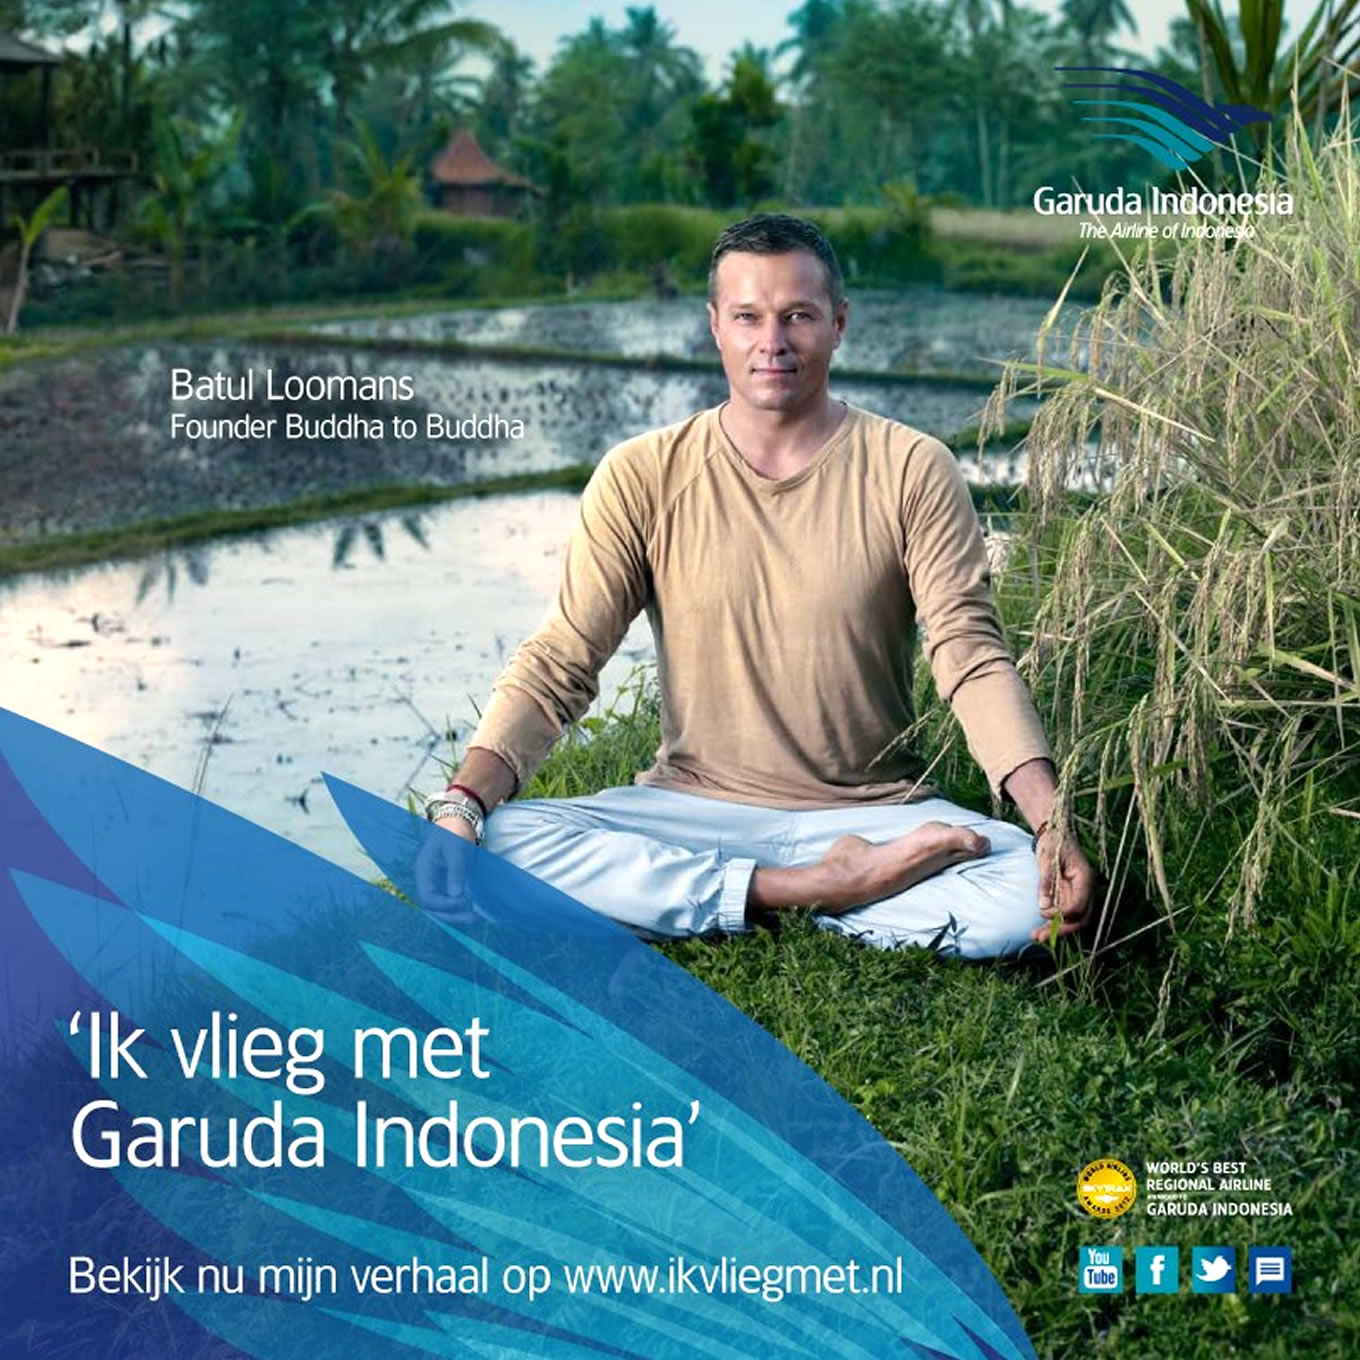 Batul Loomans, Ik Vlieg Met Travel Marketing Campaign by Garuda Indonesia Netherland